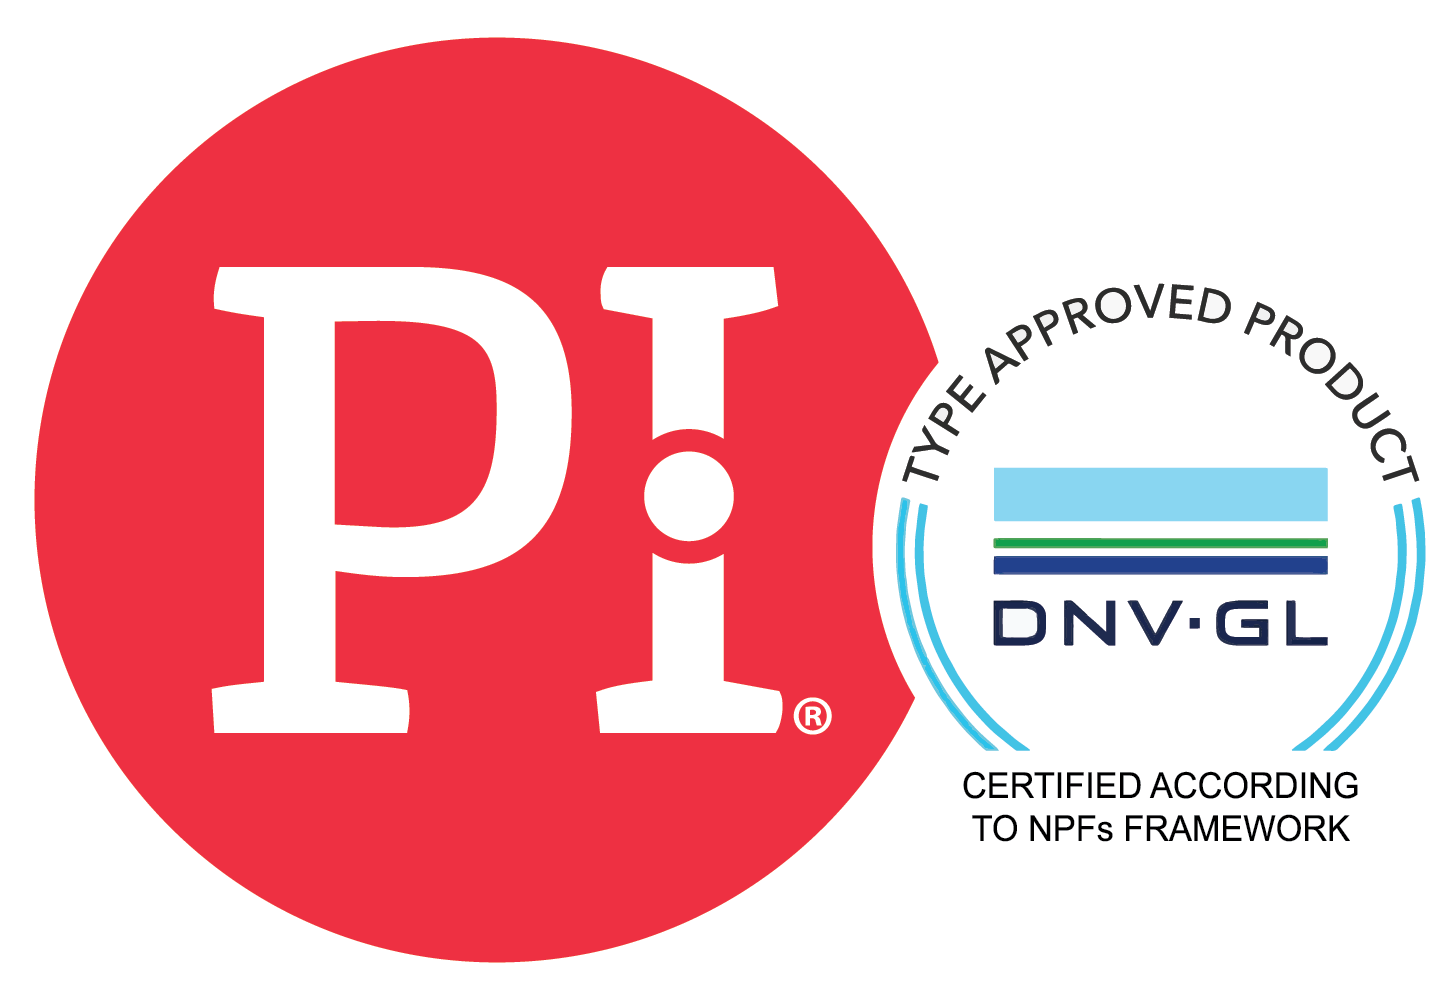 Predictive Index DNV-GL certified